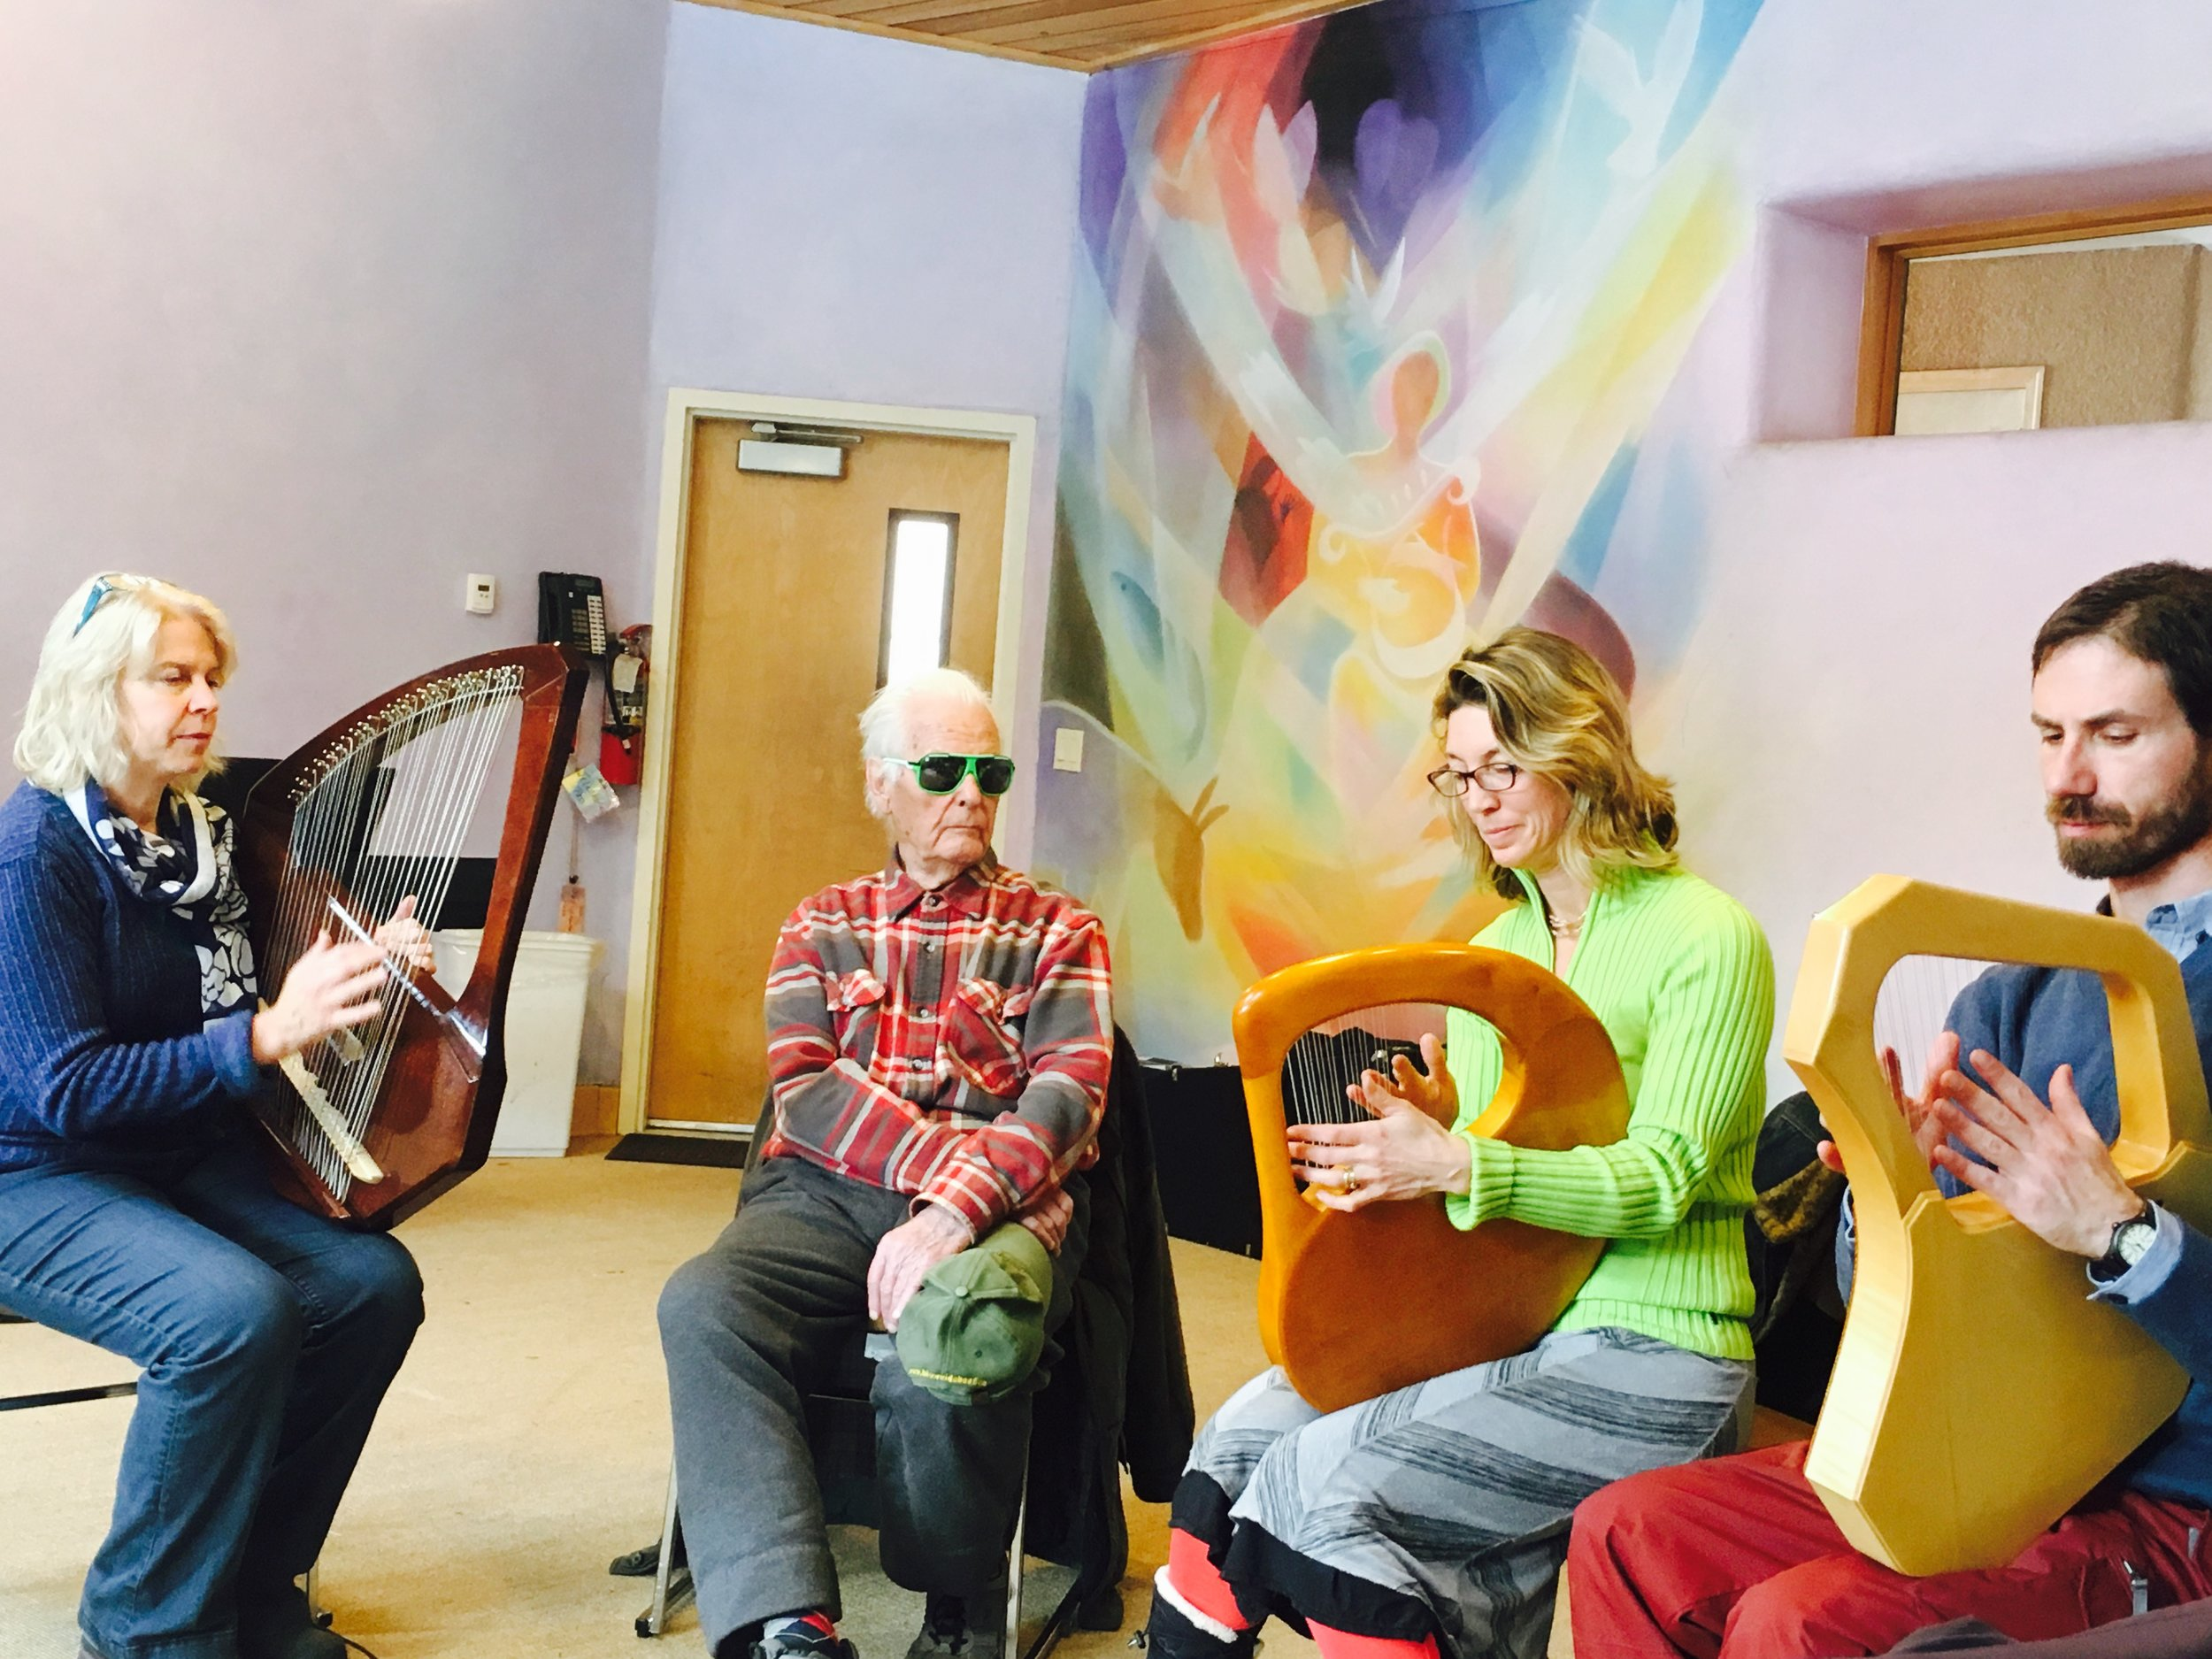 Pictured from left to right: Lorraine Curry, Hartmut Schiffer, Holly Richardson and Baruch Simon. Orpheus painted on the wall behind by local artist, Charles Andrade. Thank you to Itzel Salazar for taking the photo. (Itzel wants to learn to play!)